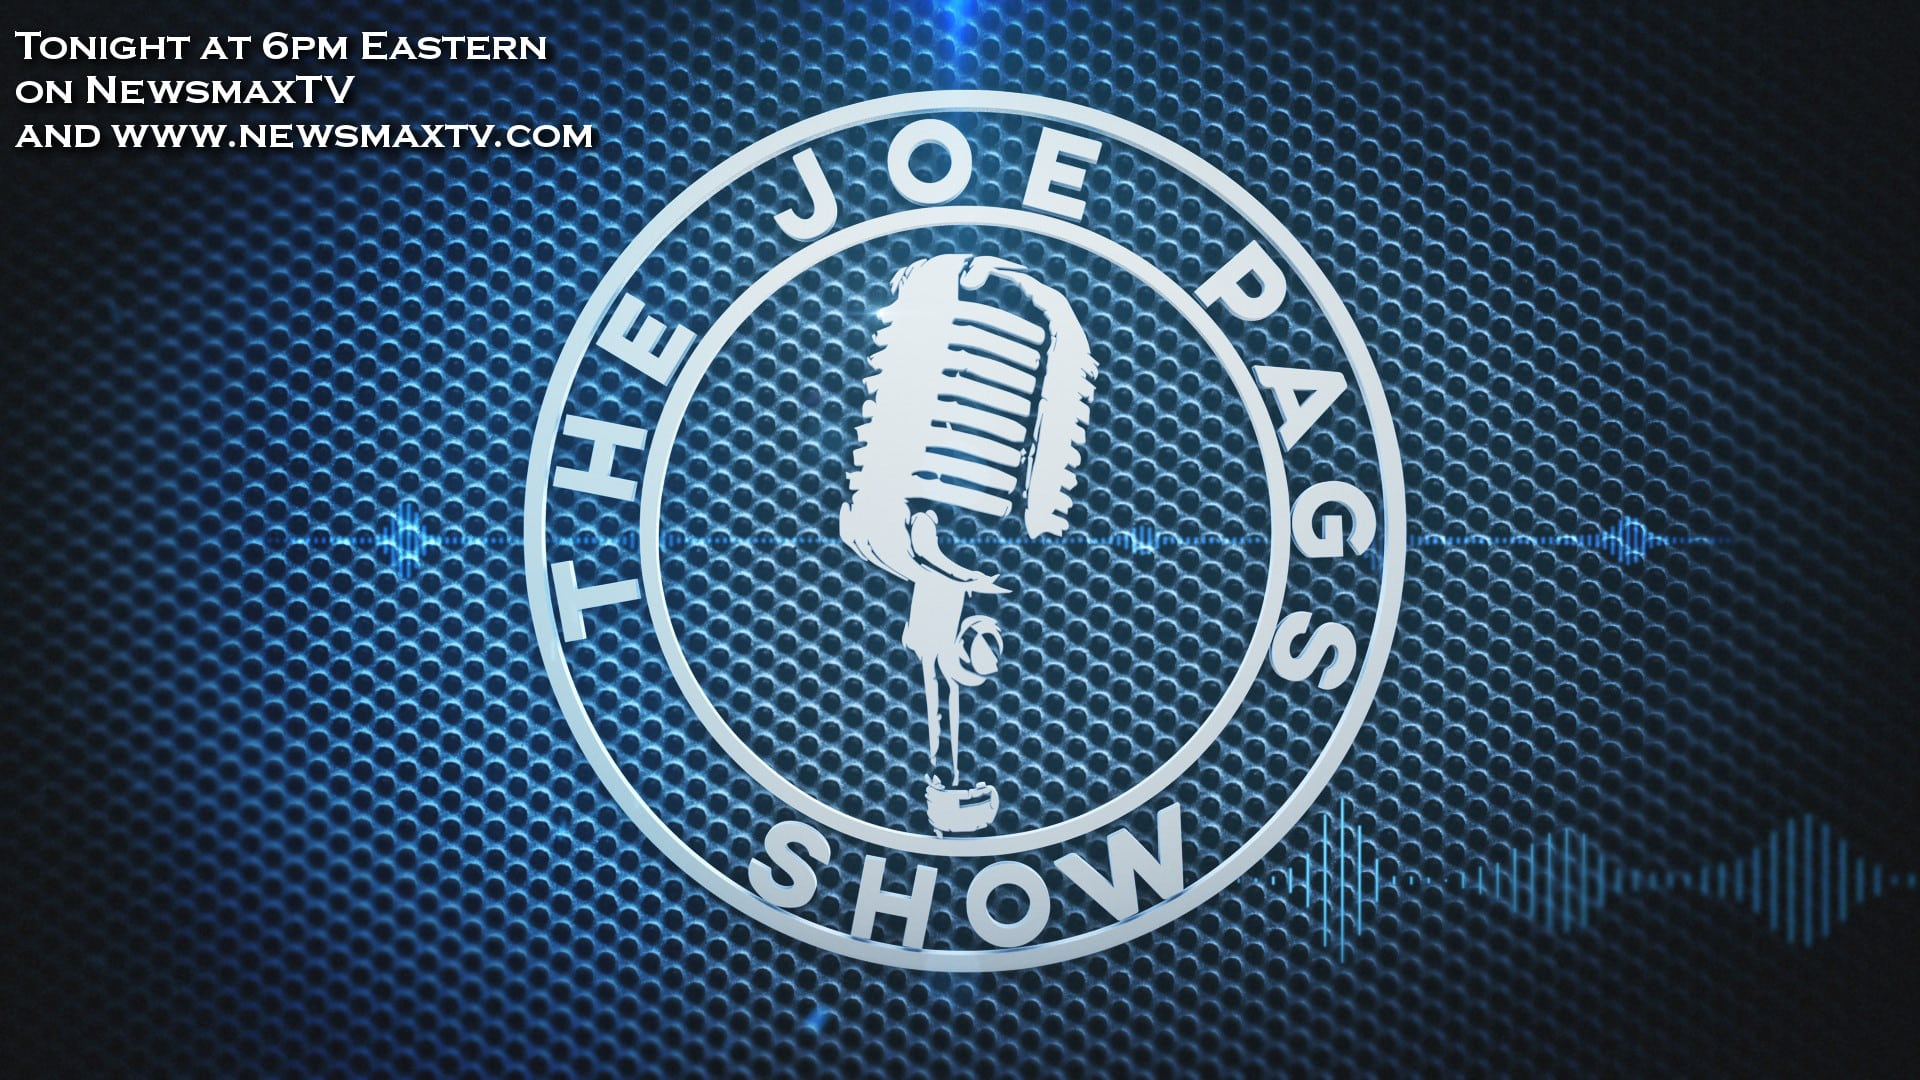 Catch The Joe Pags Show M-F on NewsmaxTV!